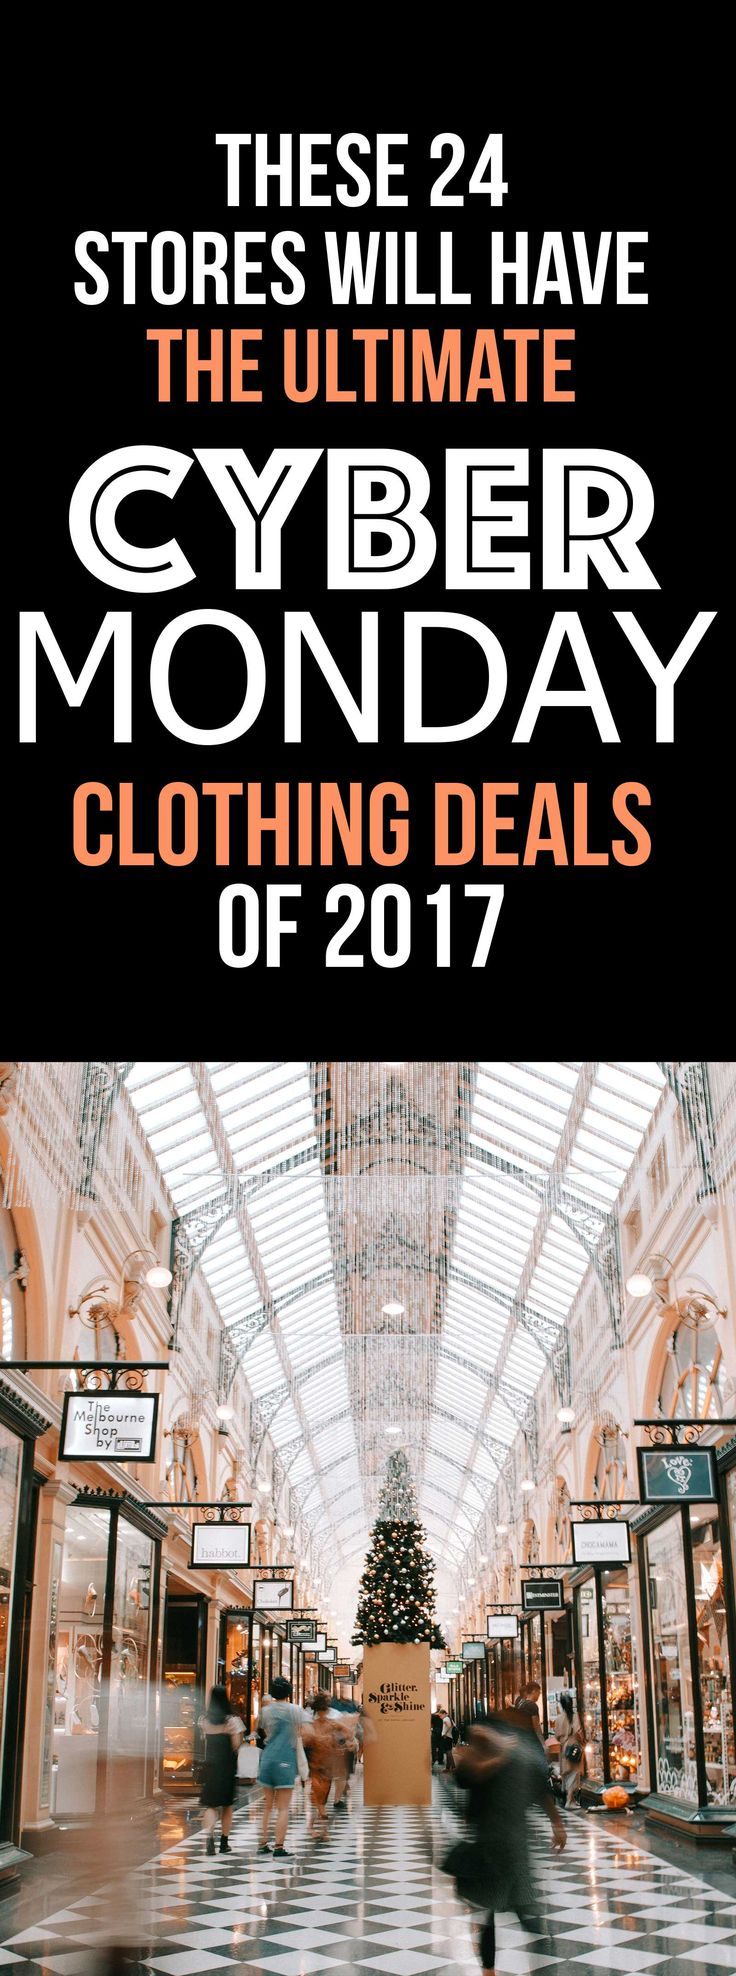 48081 best living the life images on pinterest beautiful for Cyber monday deals mens dress shirts